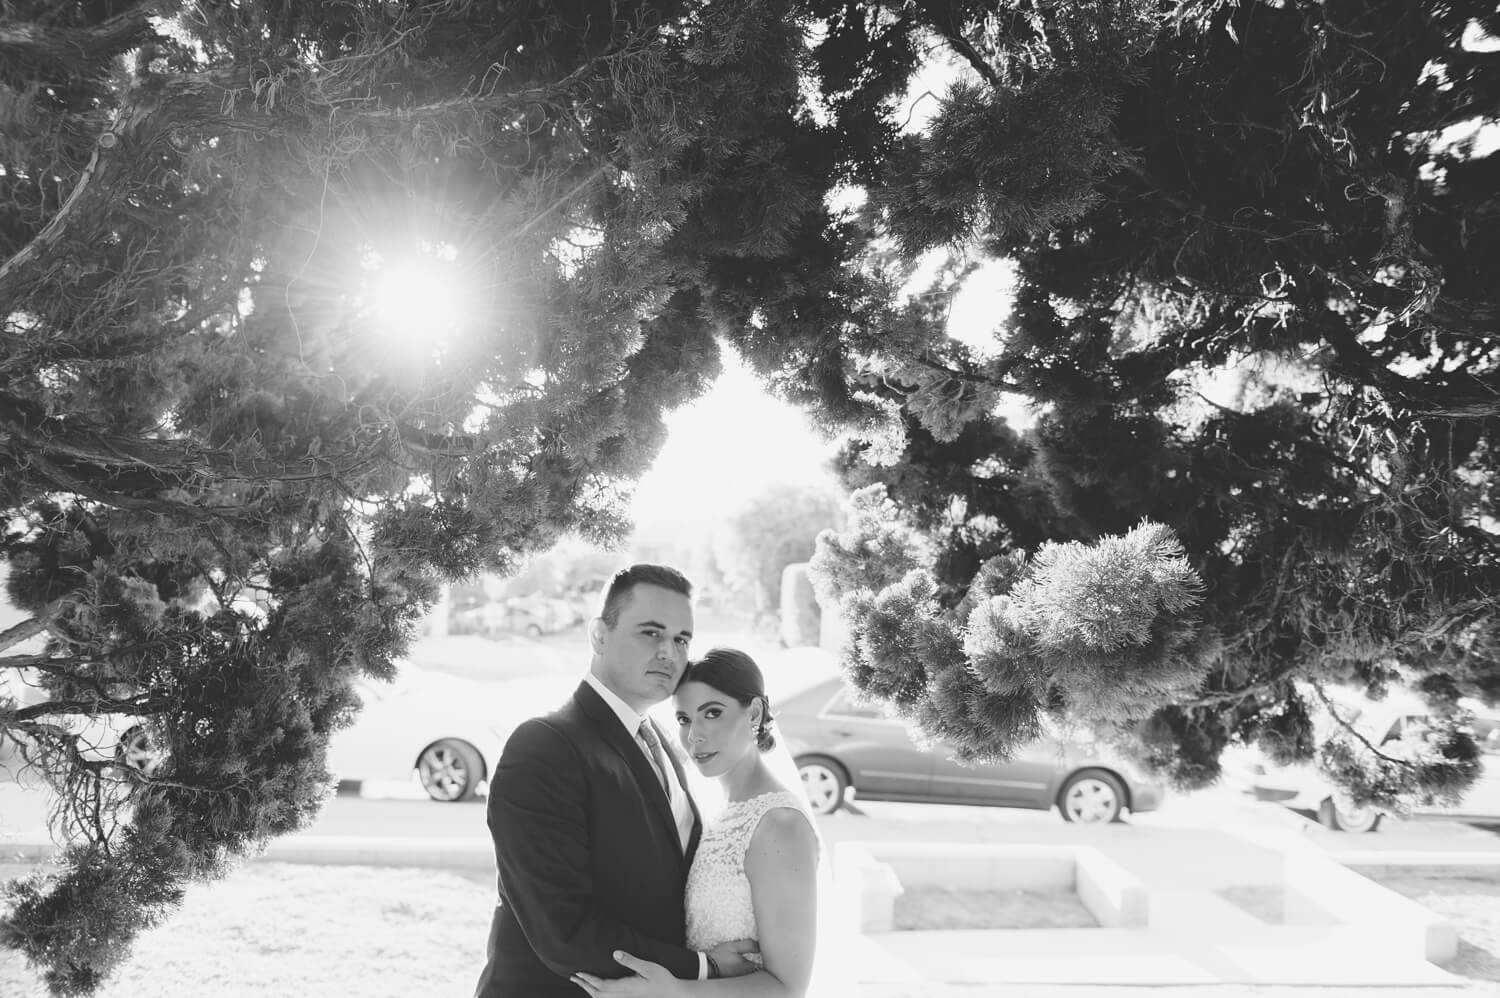 bride and groom pose under tree with sun after all hallows wedding ceremony